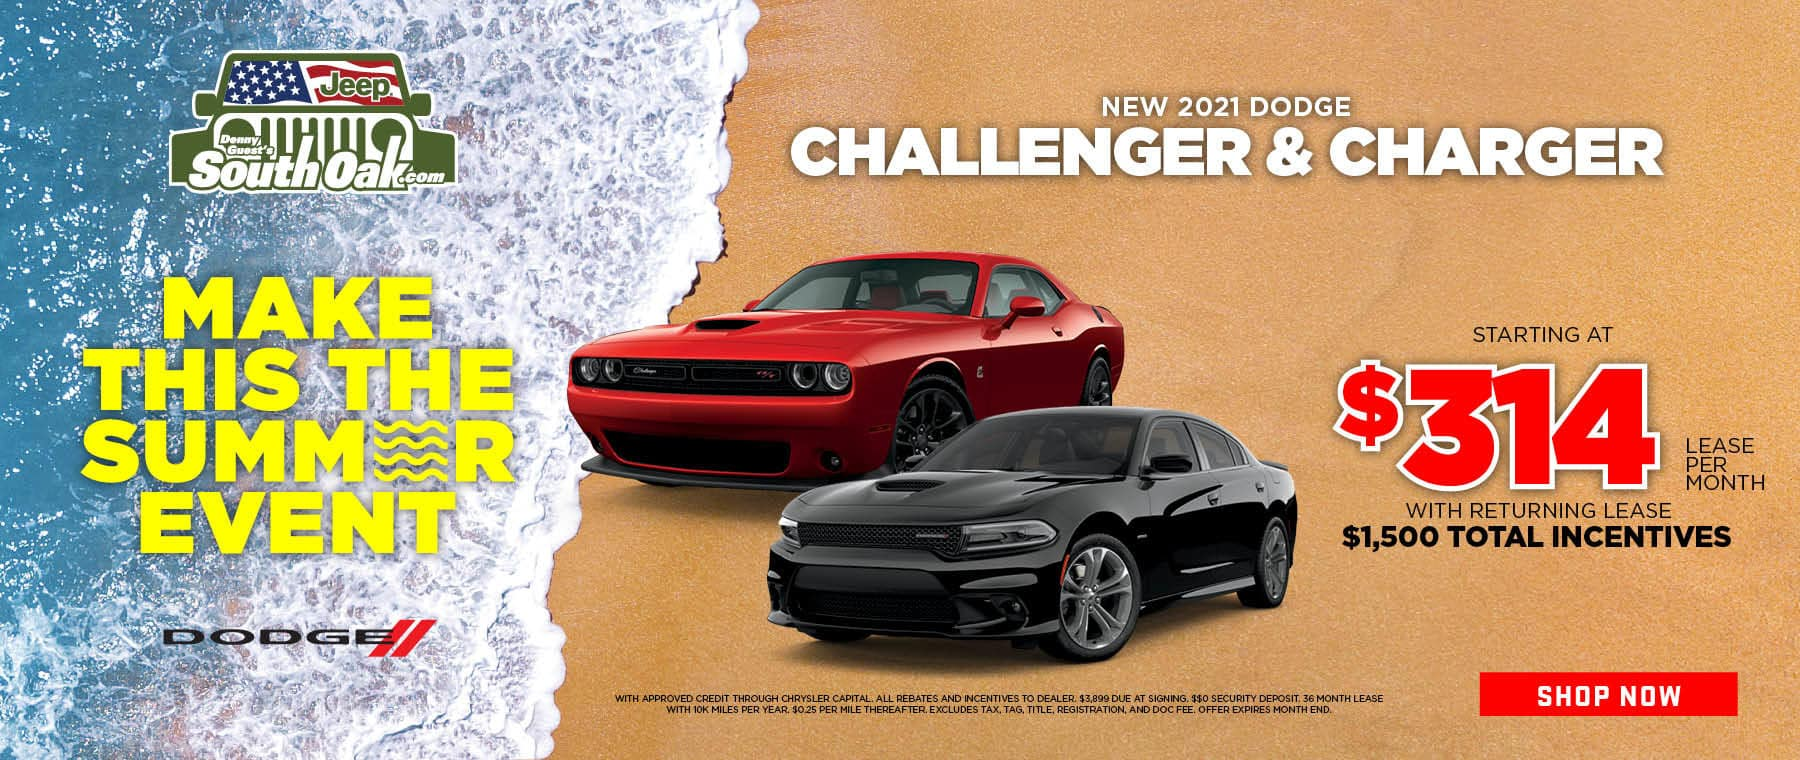 2021 Dodge Challenger and Charger Special